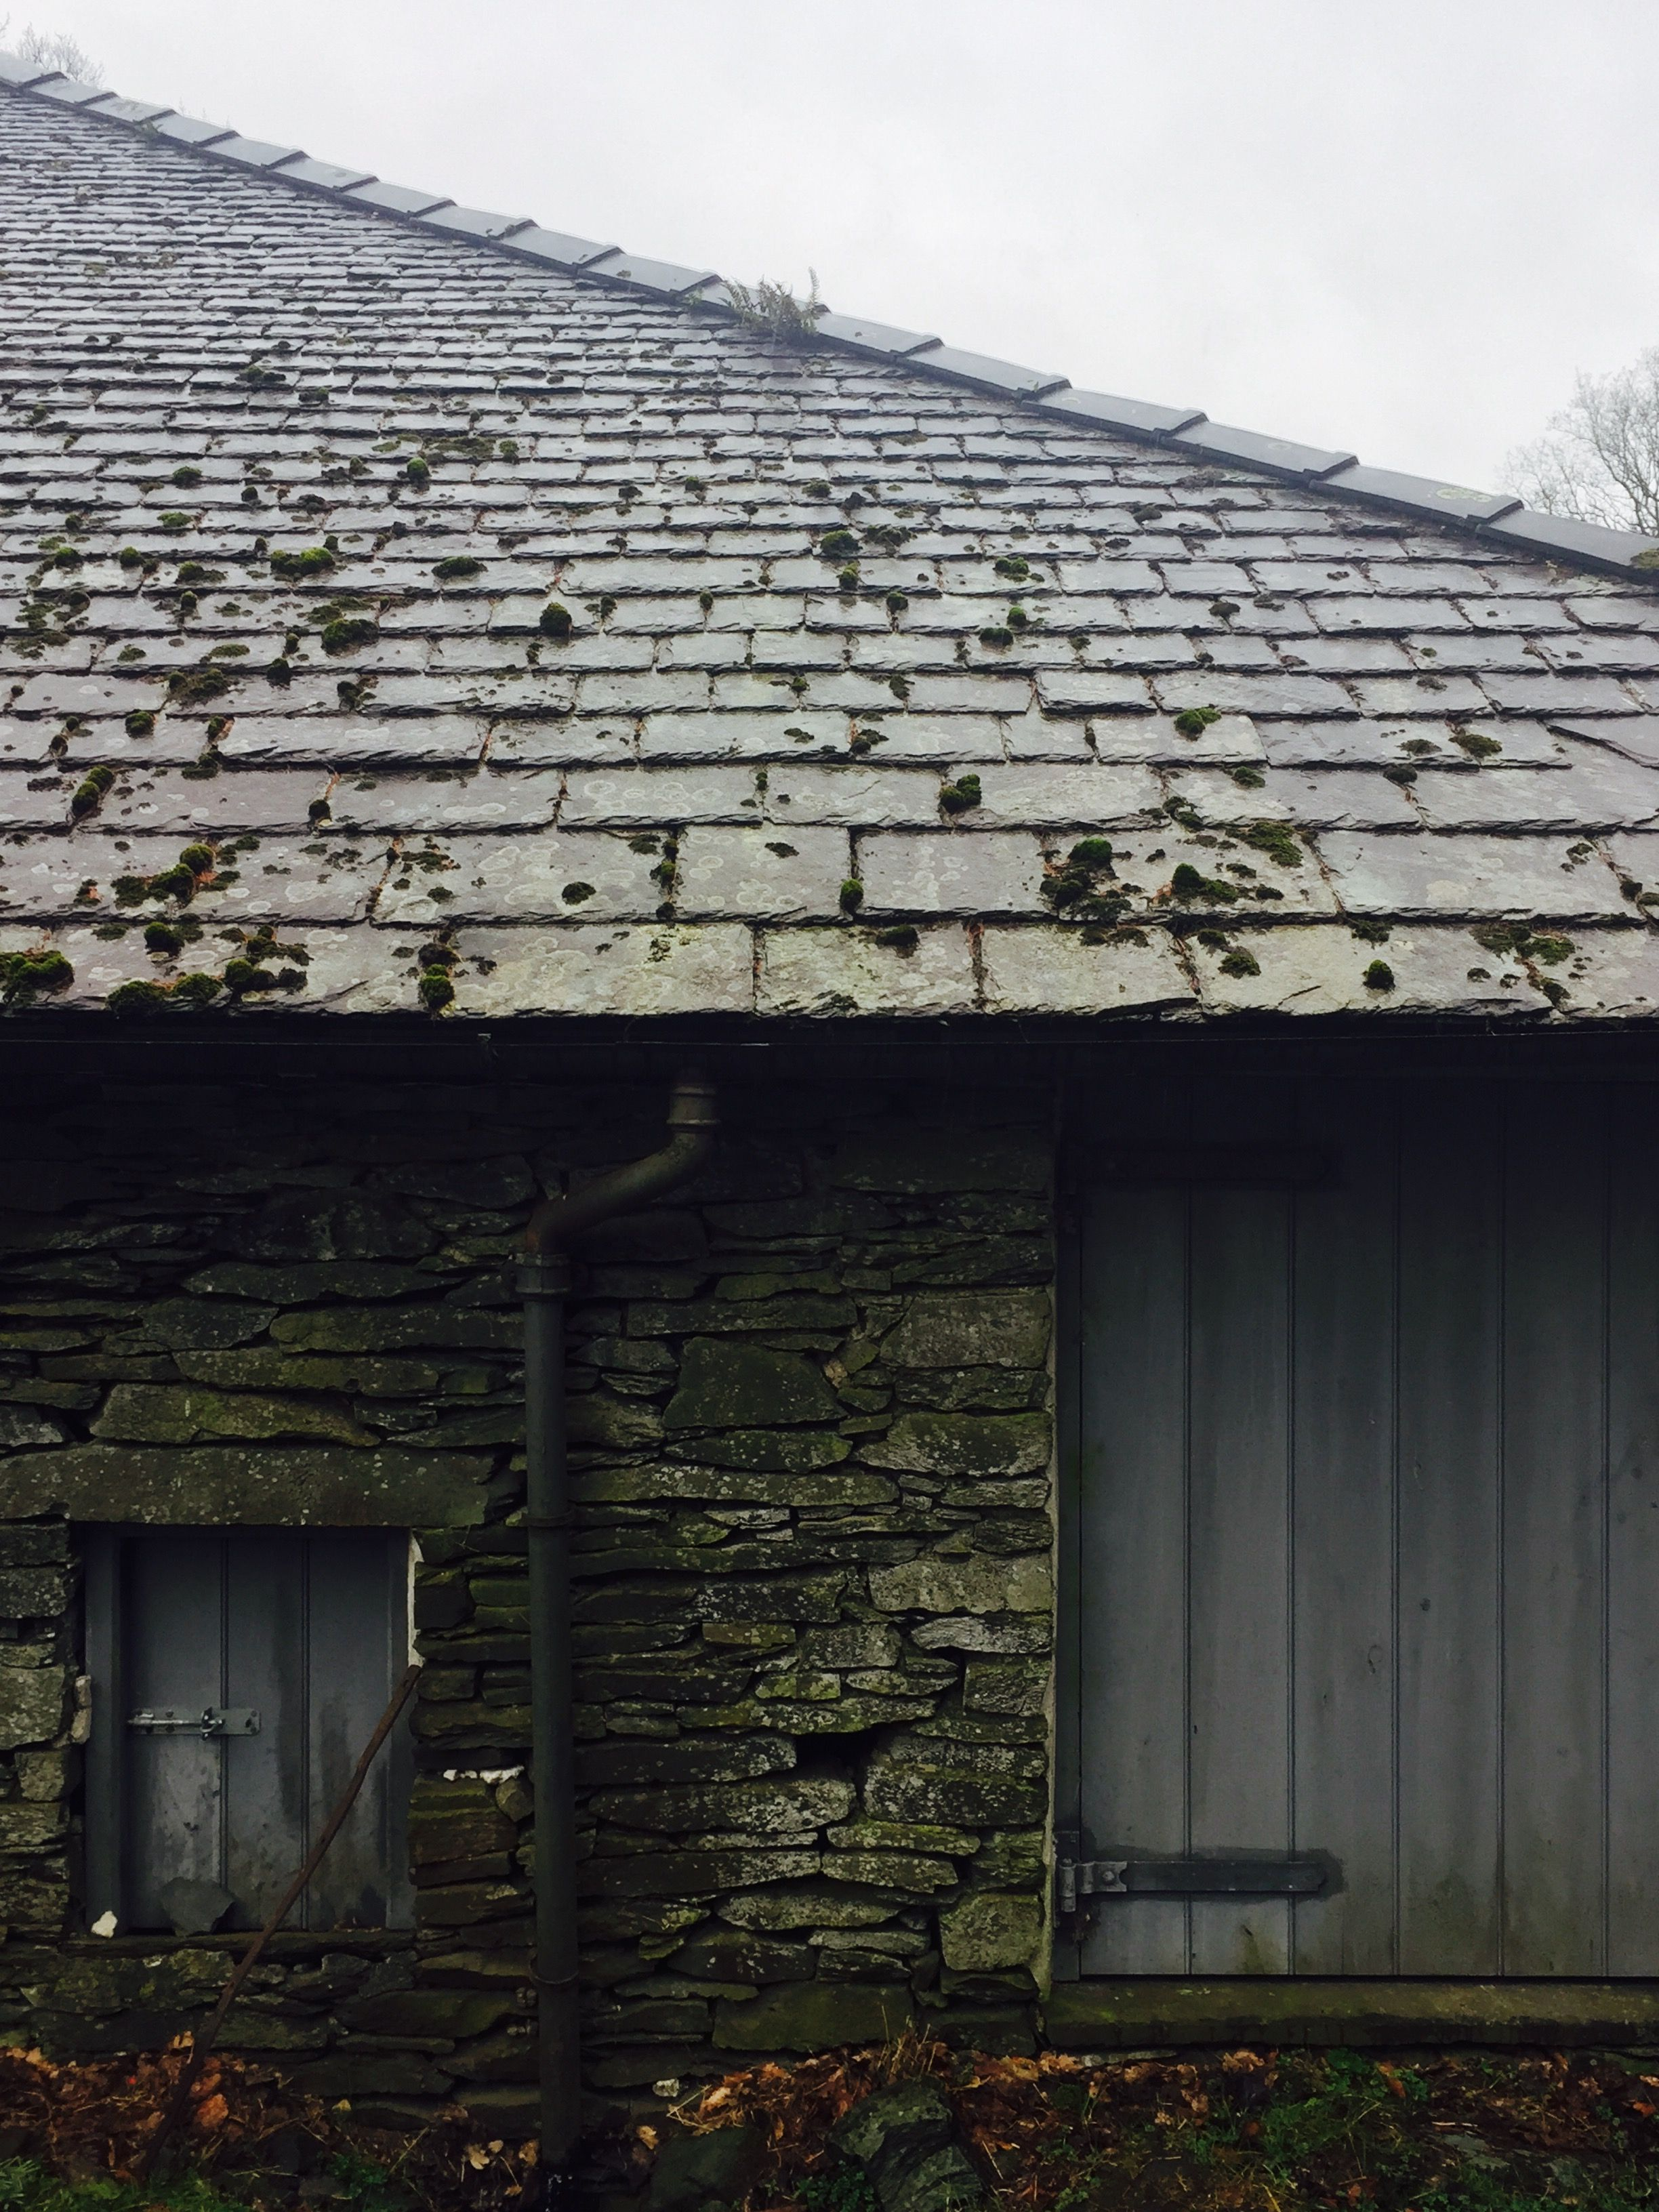 Diminishing courses of natural slate roof tiles  (Scantle